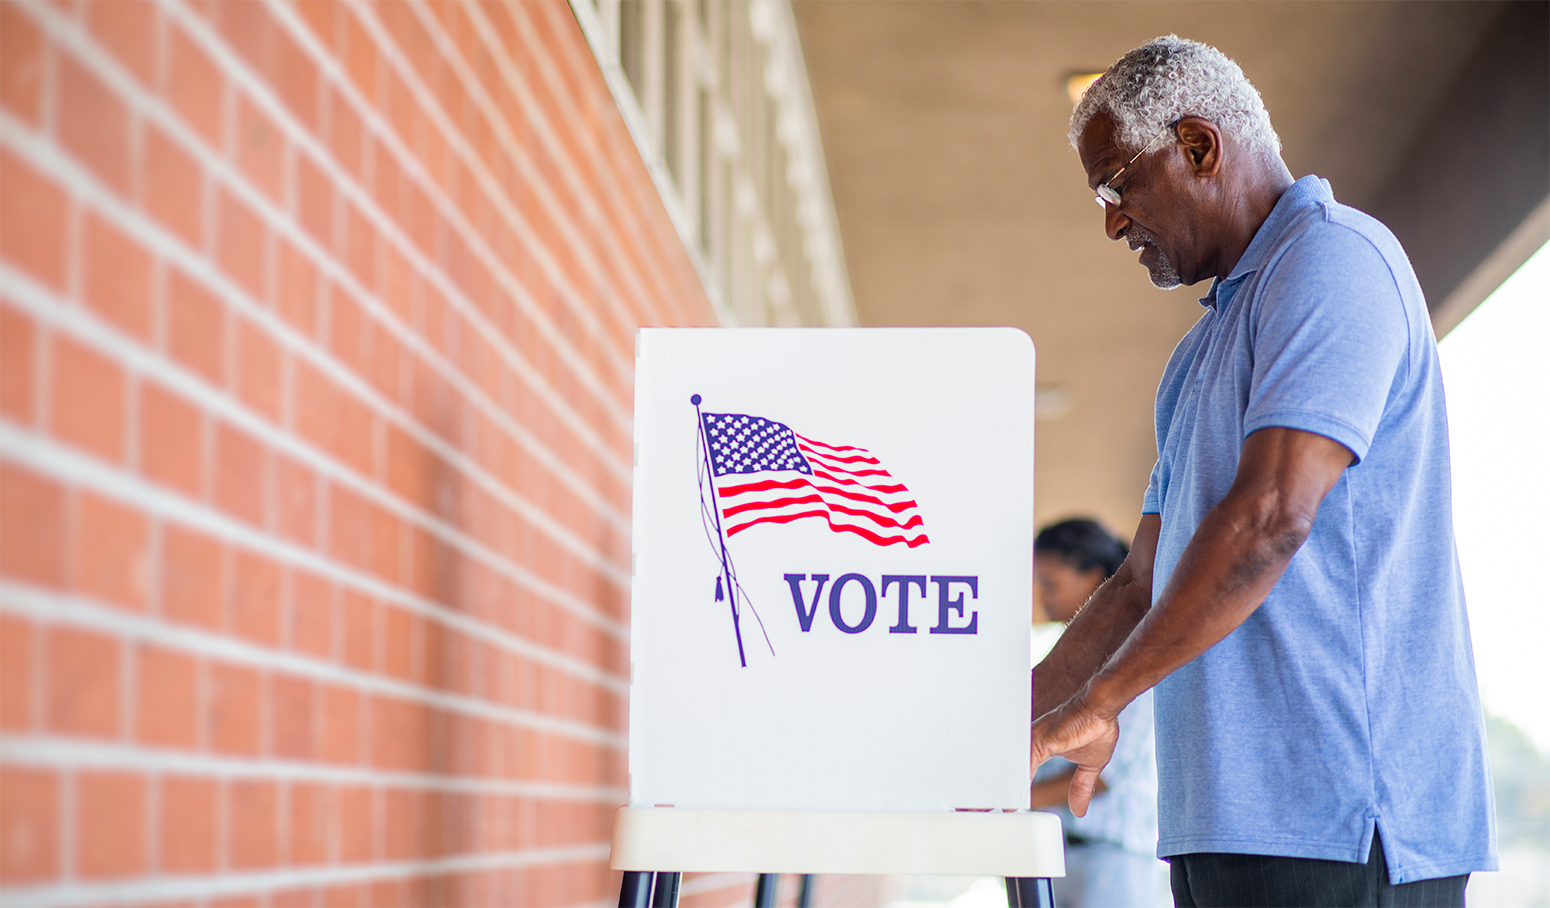 Man at a voting booth